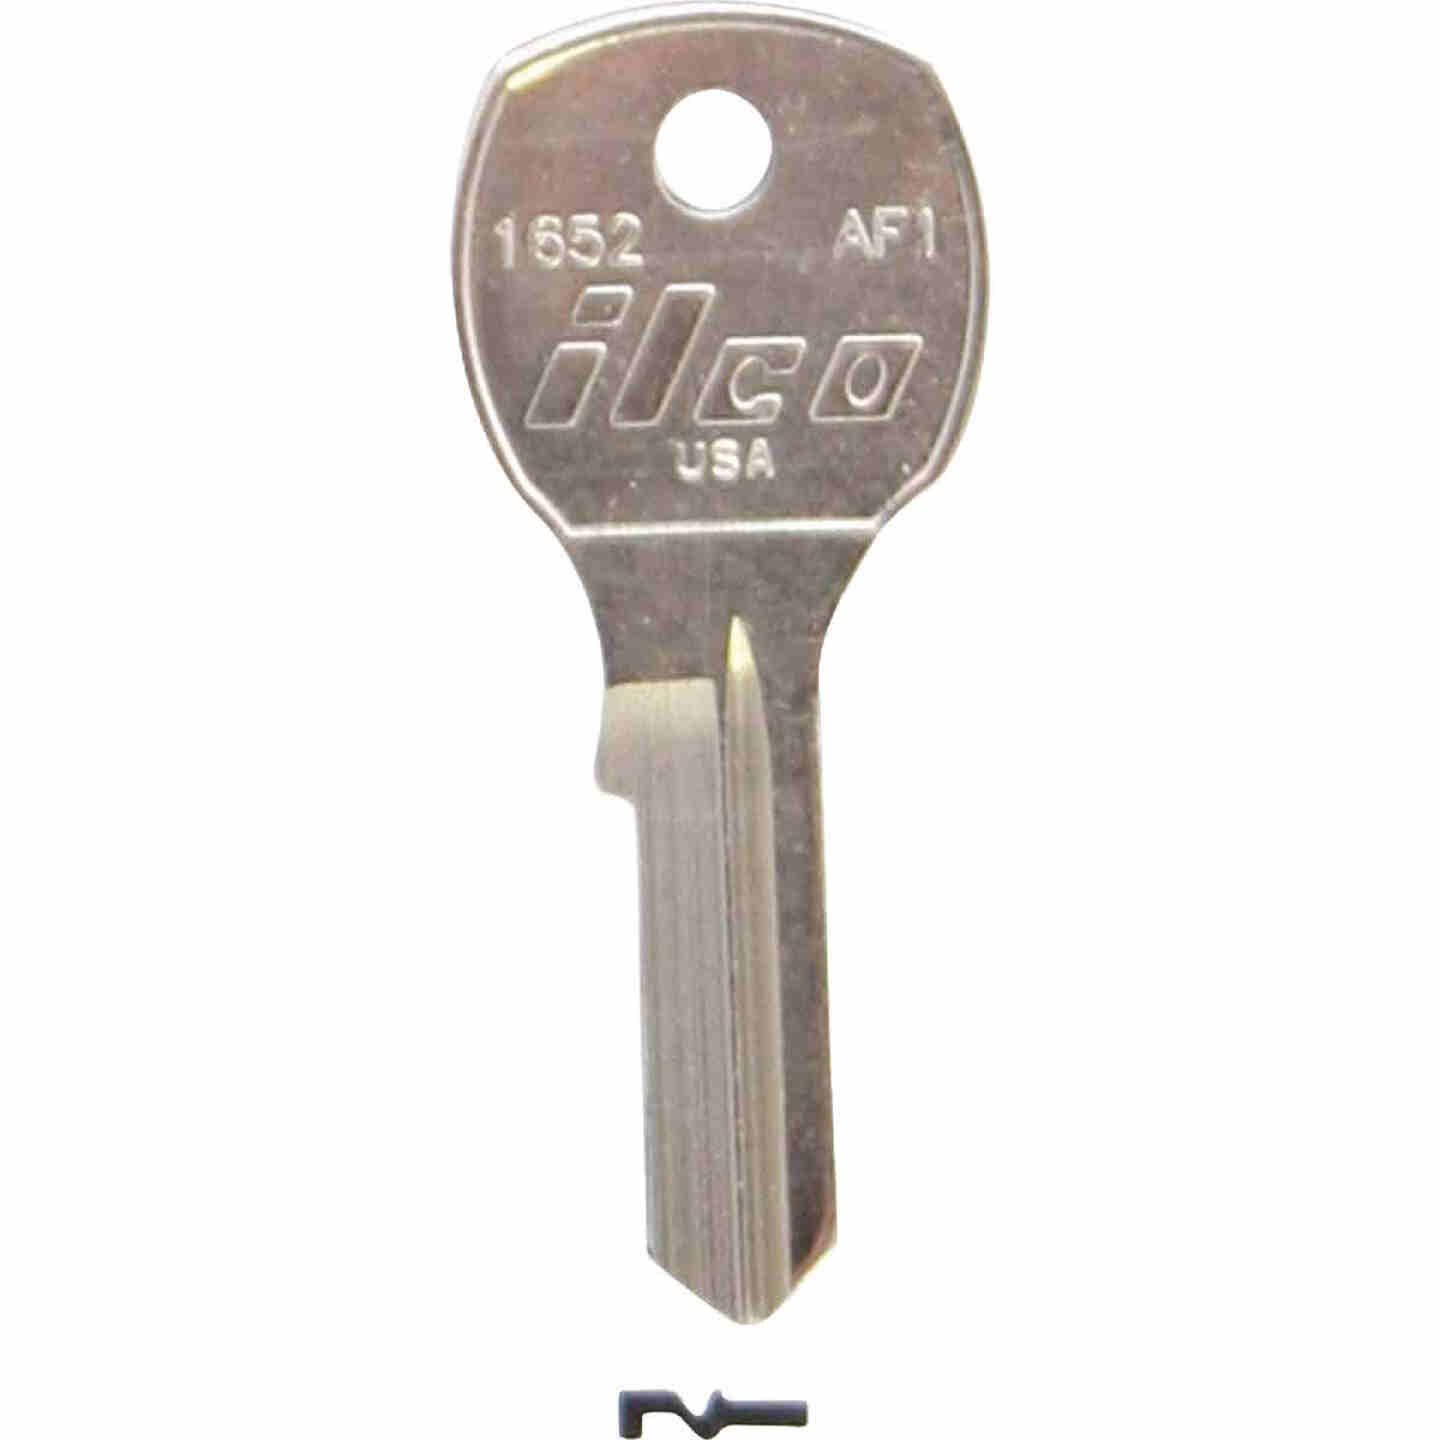 ILCO Florence Nickel Plated House Key, AF1 (10-Pack) Image 1